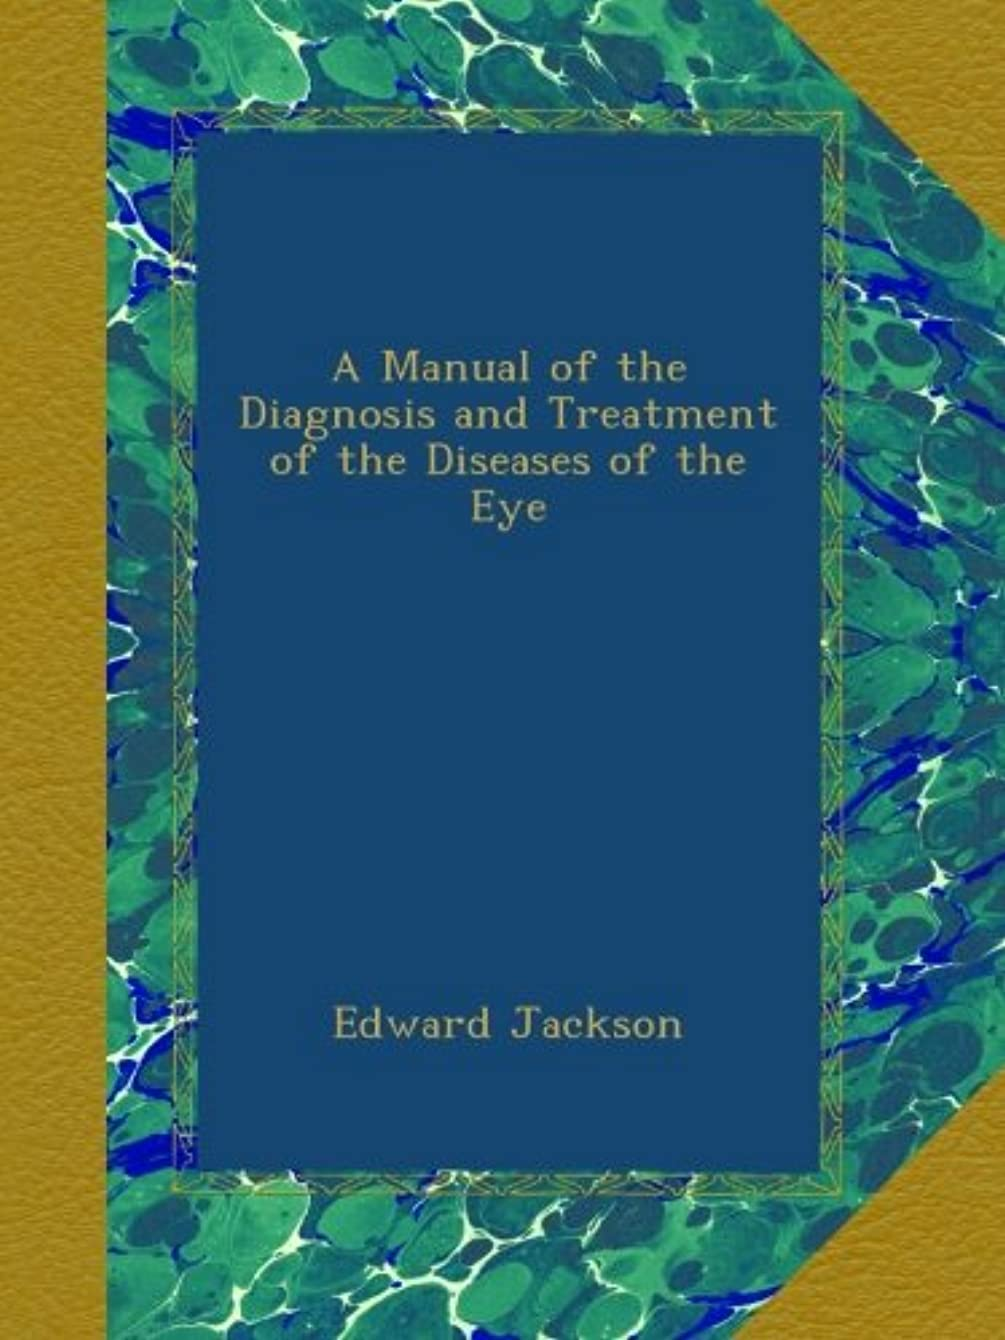 深める年金受給者透明にA Manual of the Diagnosis and Treatment of the Diseases of the Eye